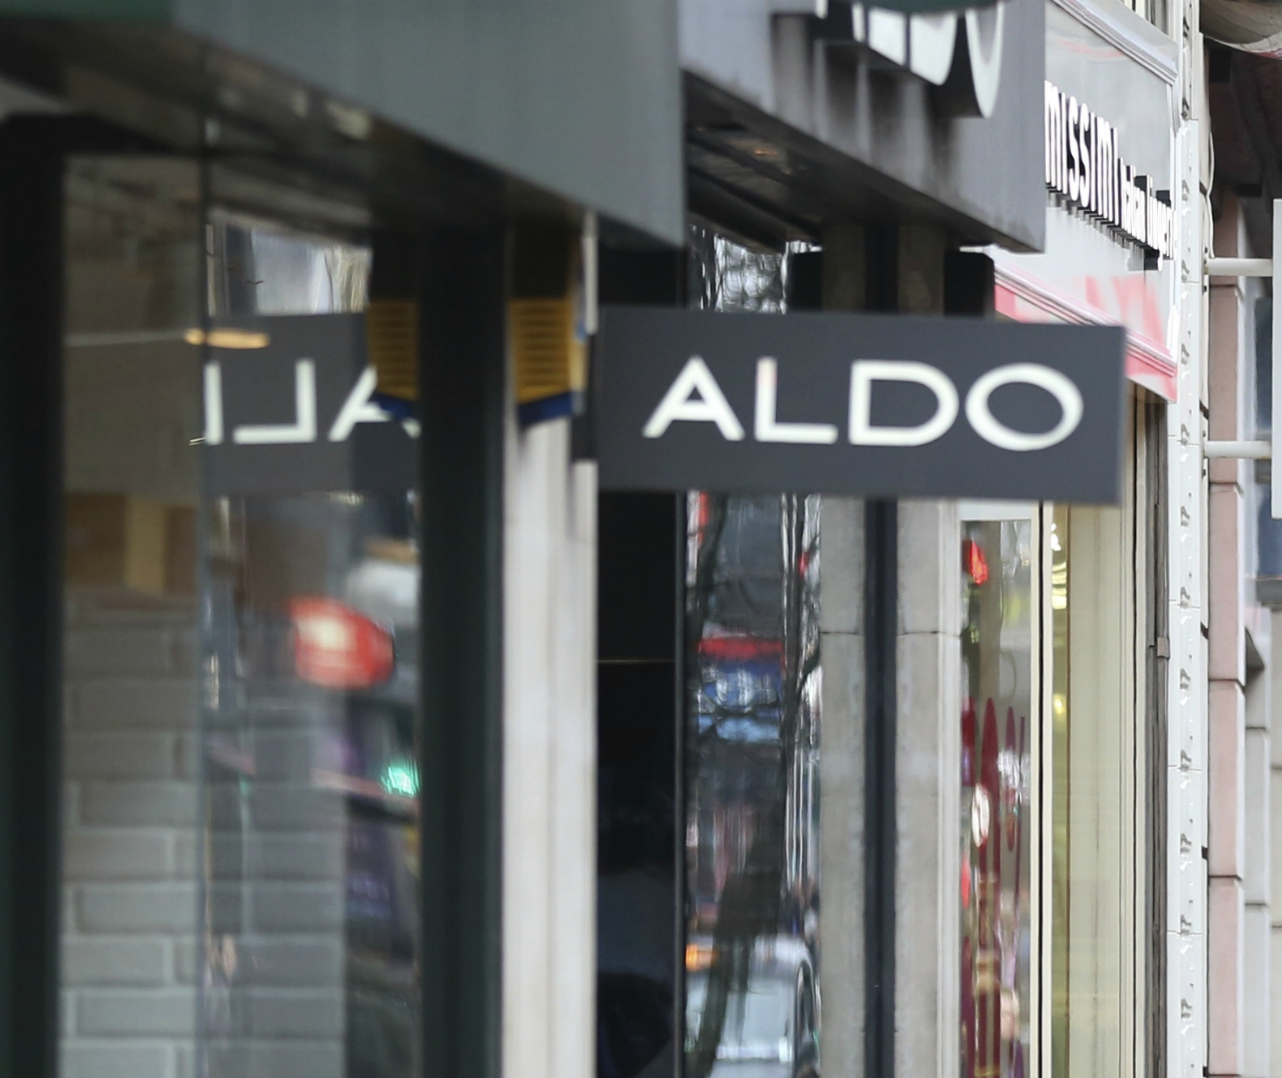 Aldo's UK operation finds a home with new owner Bushell Investment Group, which acquired the footwear business out of administration.